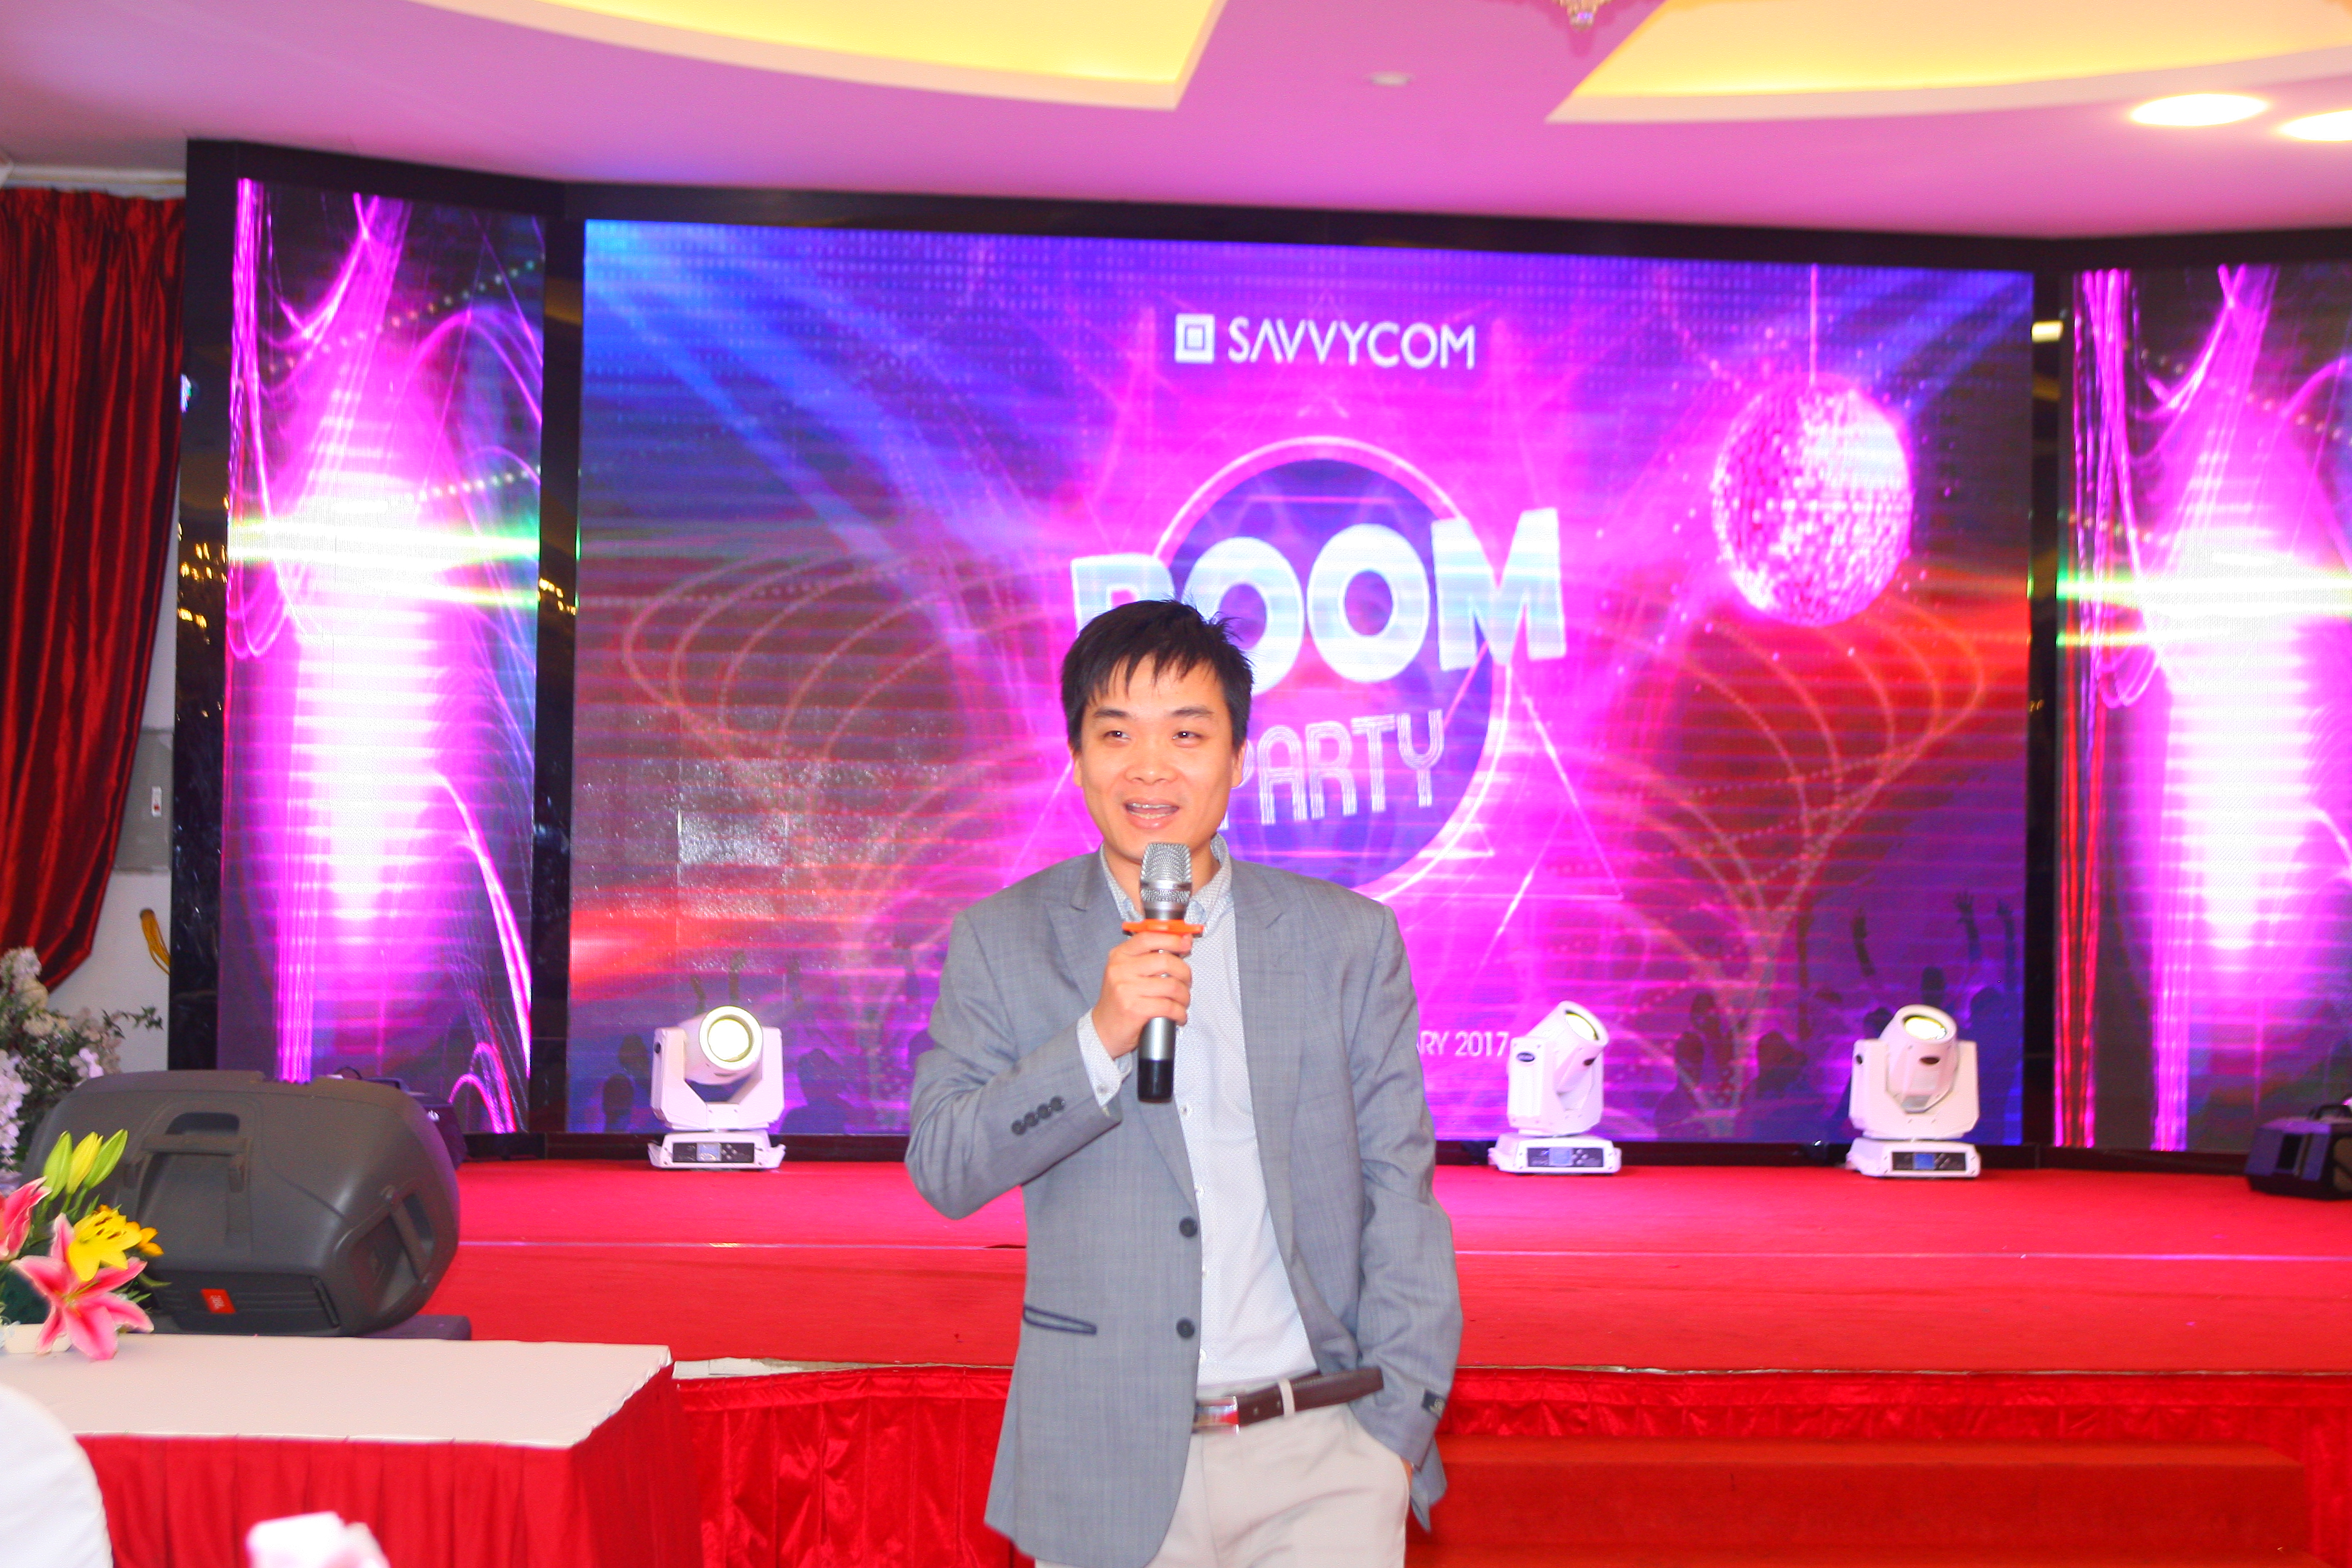 Our Chairman-Mr.Vinh shared Savvycom vision in the new year